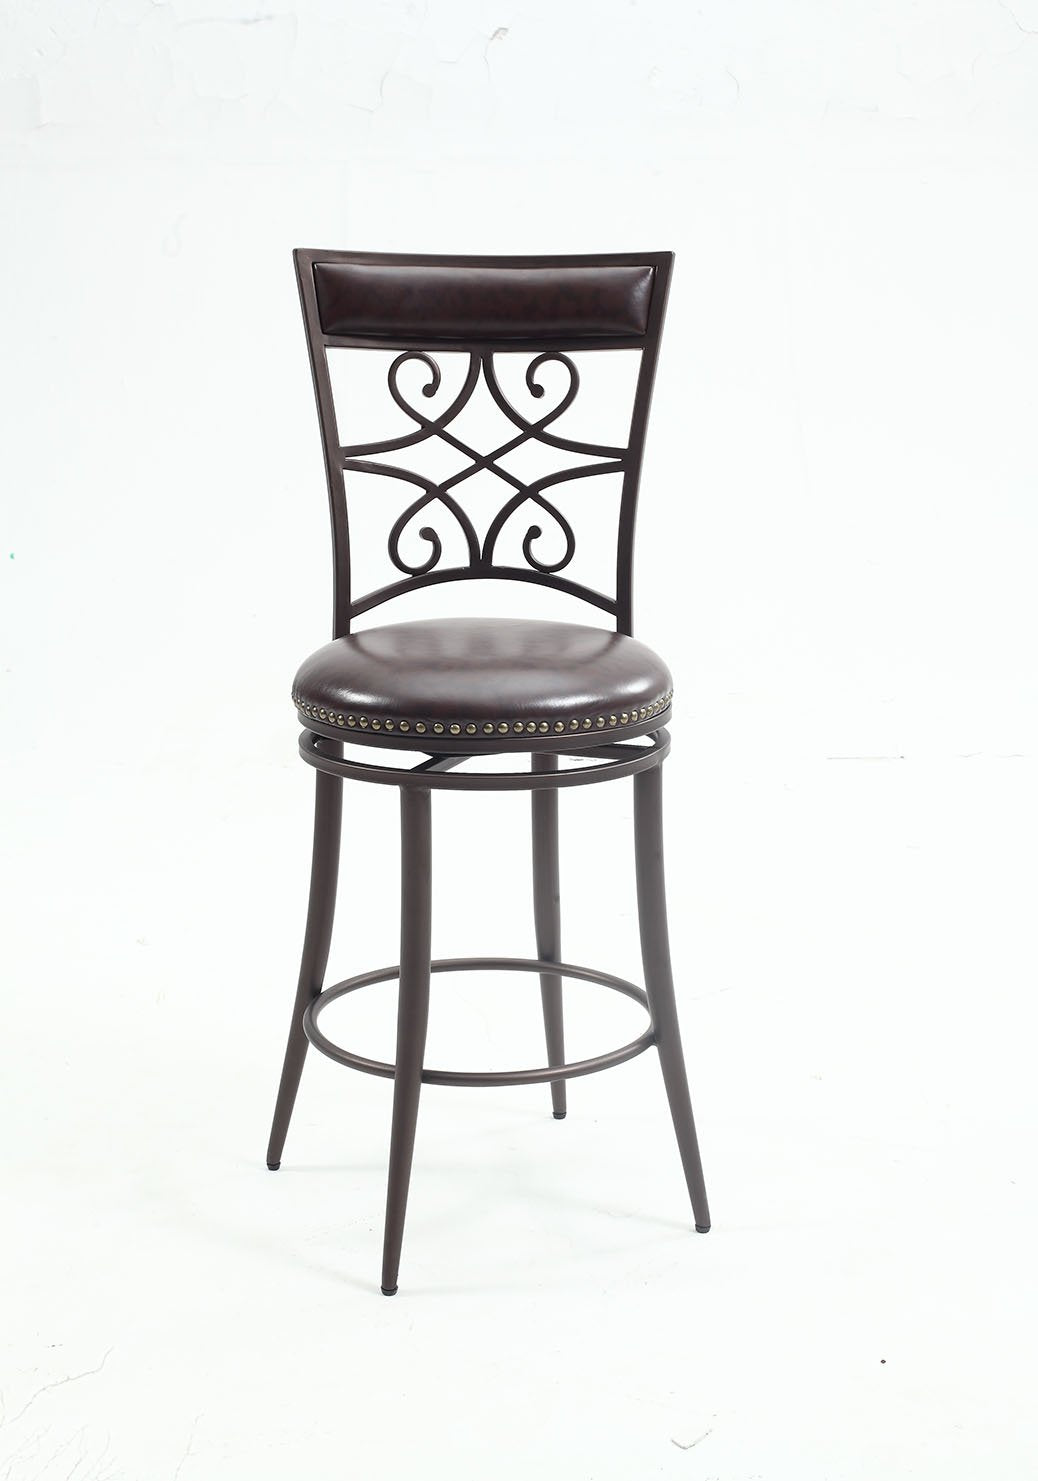 Chintaly 0233-CS Scroll back counter stool from Chintaly